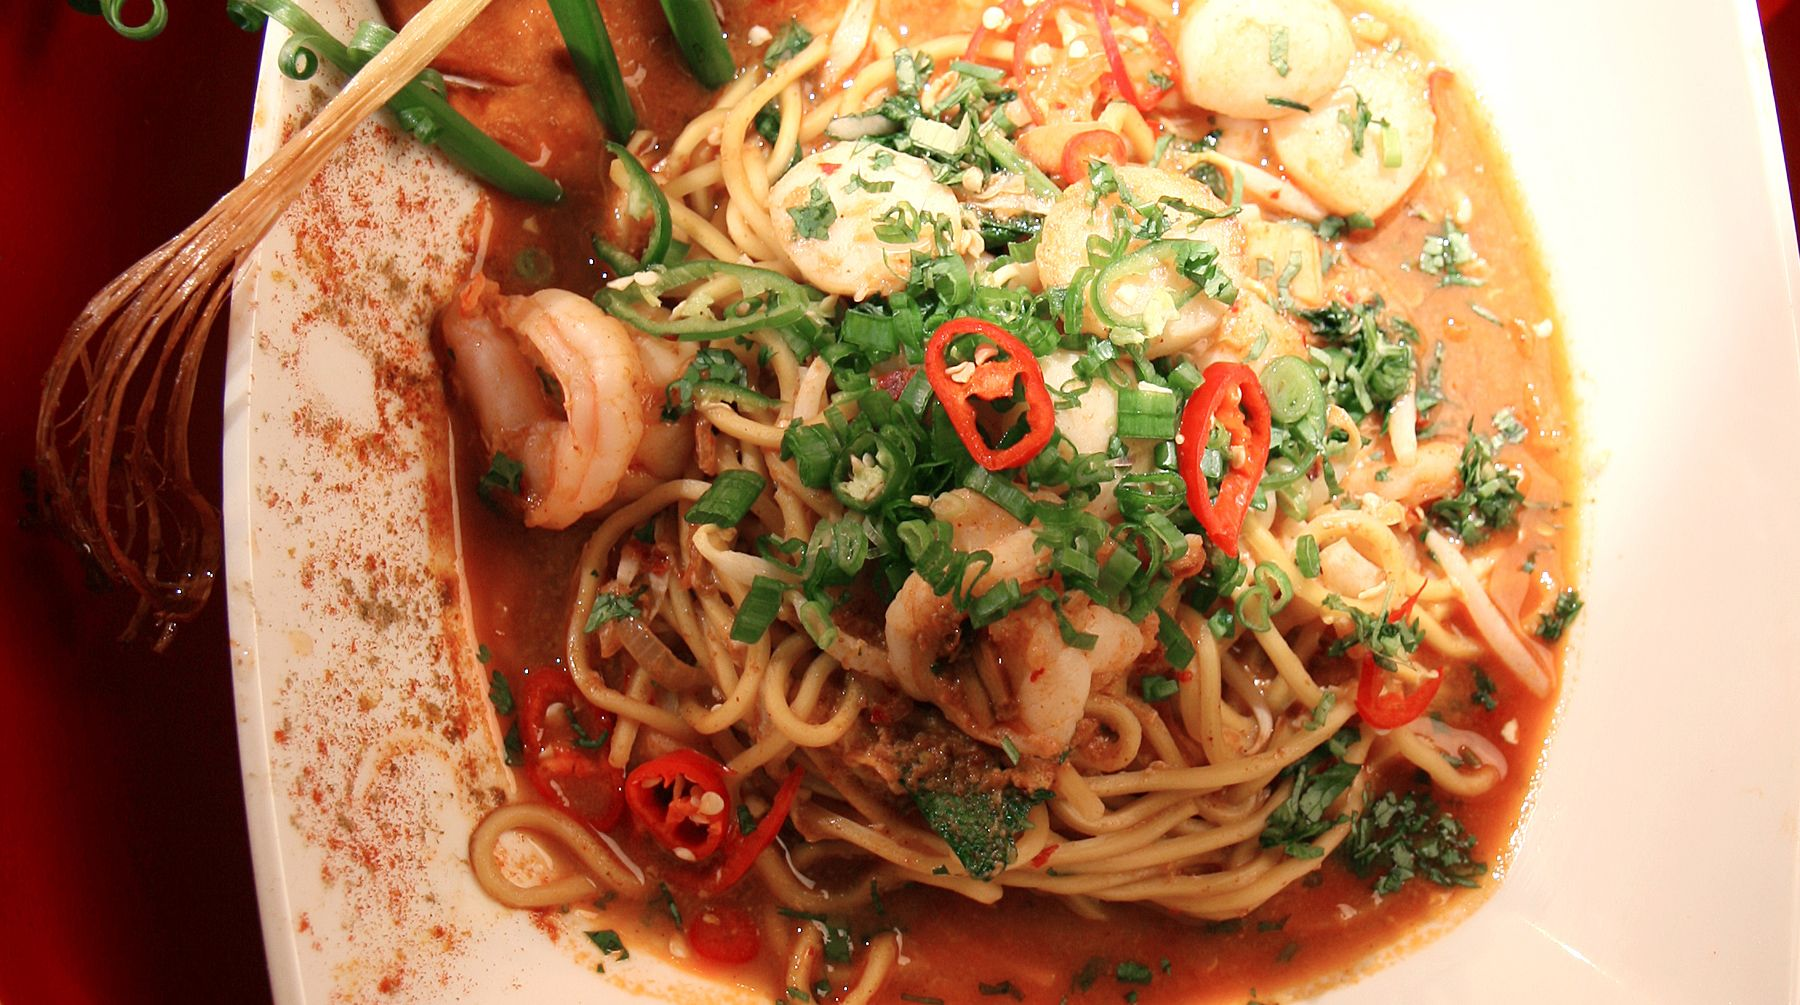 Get this quick and easy noodle dish recipe by chef wan from best wan get this quick and easy noodle dish recipe by chef wan from best wan forumfinder Choice Image